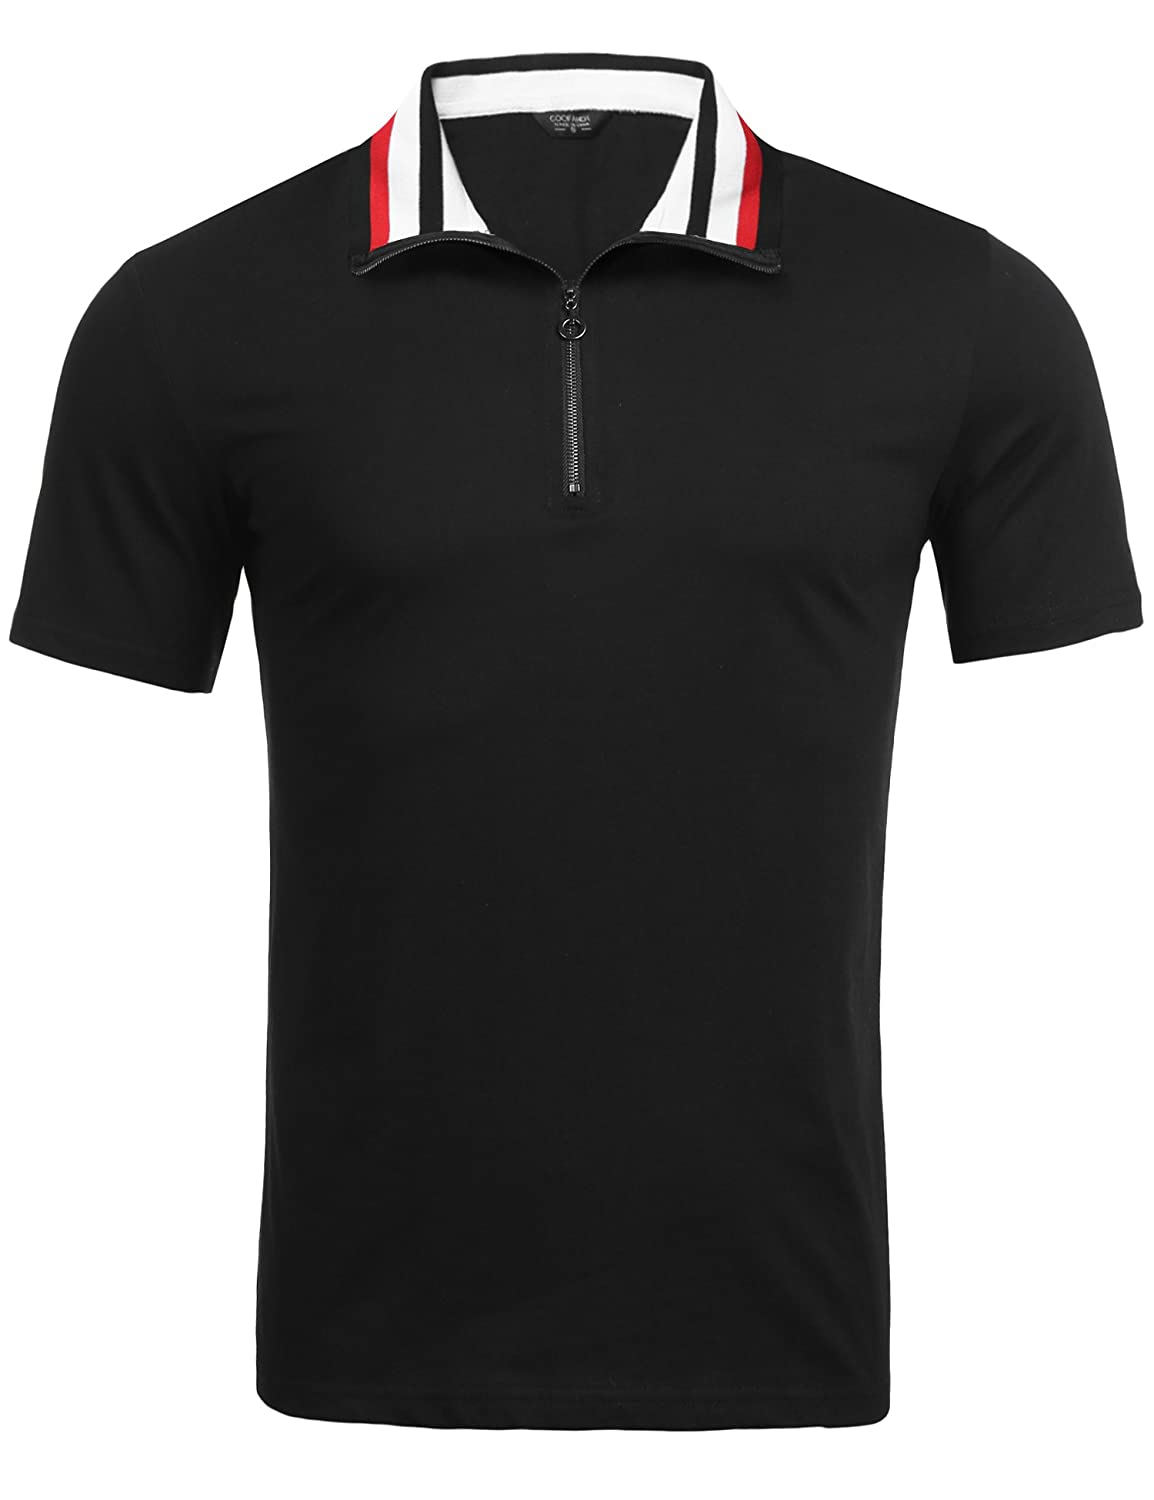 1950s Men's Clothing COOFANDY Mens Short Sleeve Polo Shirts Slim Fit Golf Shirt Quarter Zip Polo T-Shirts $21.99 AT vintagedancer.com